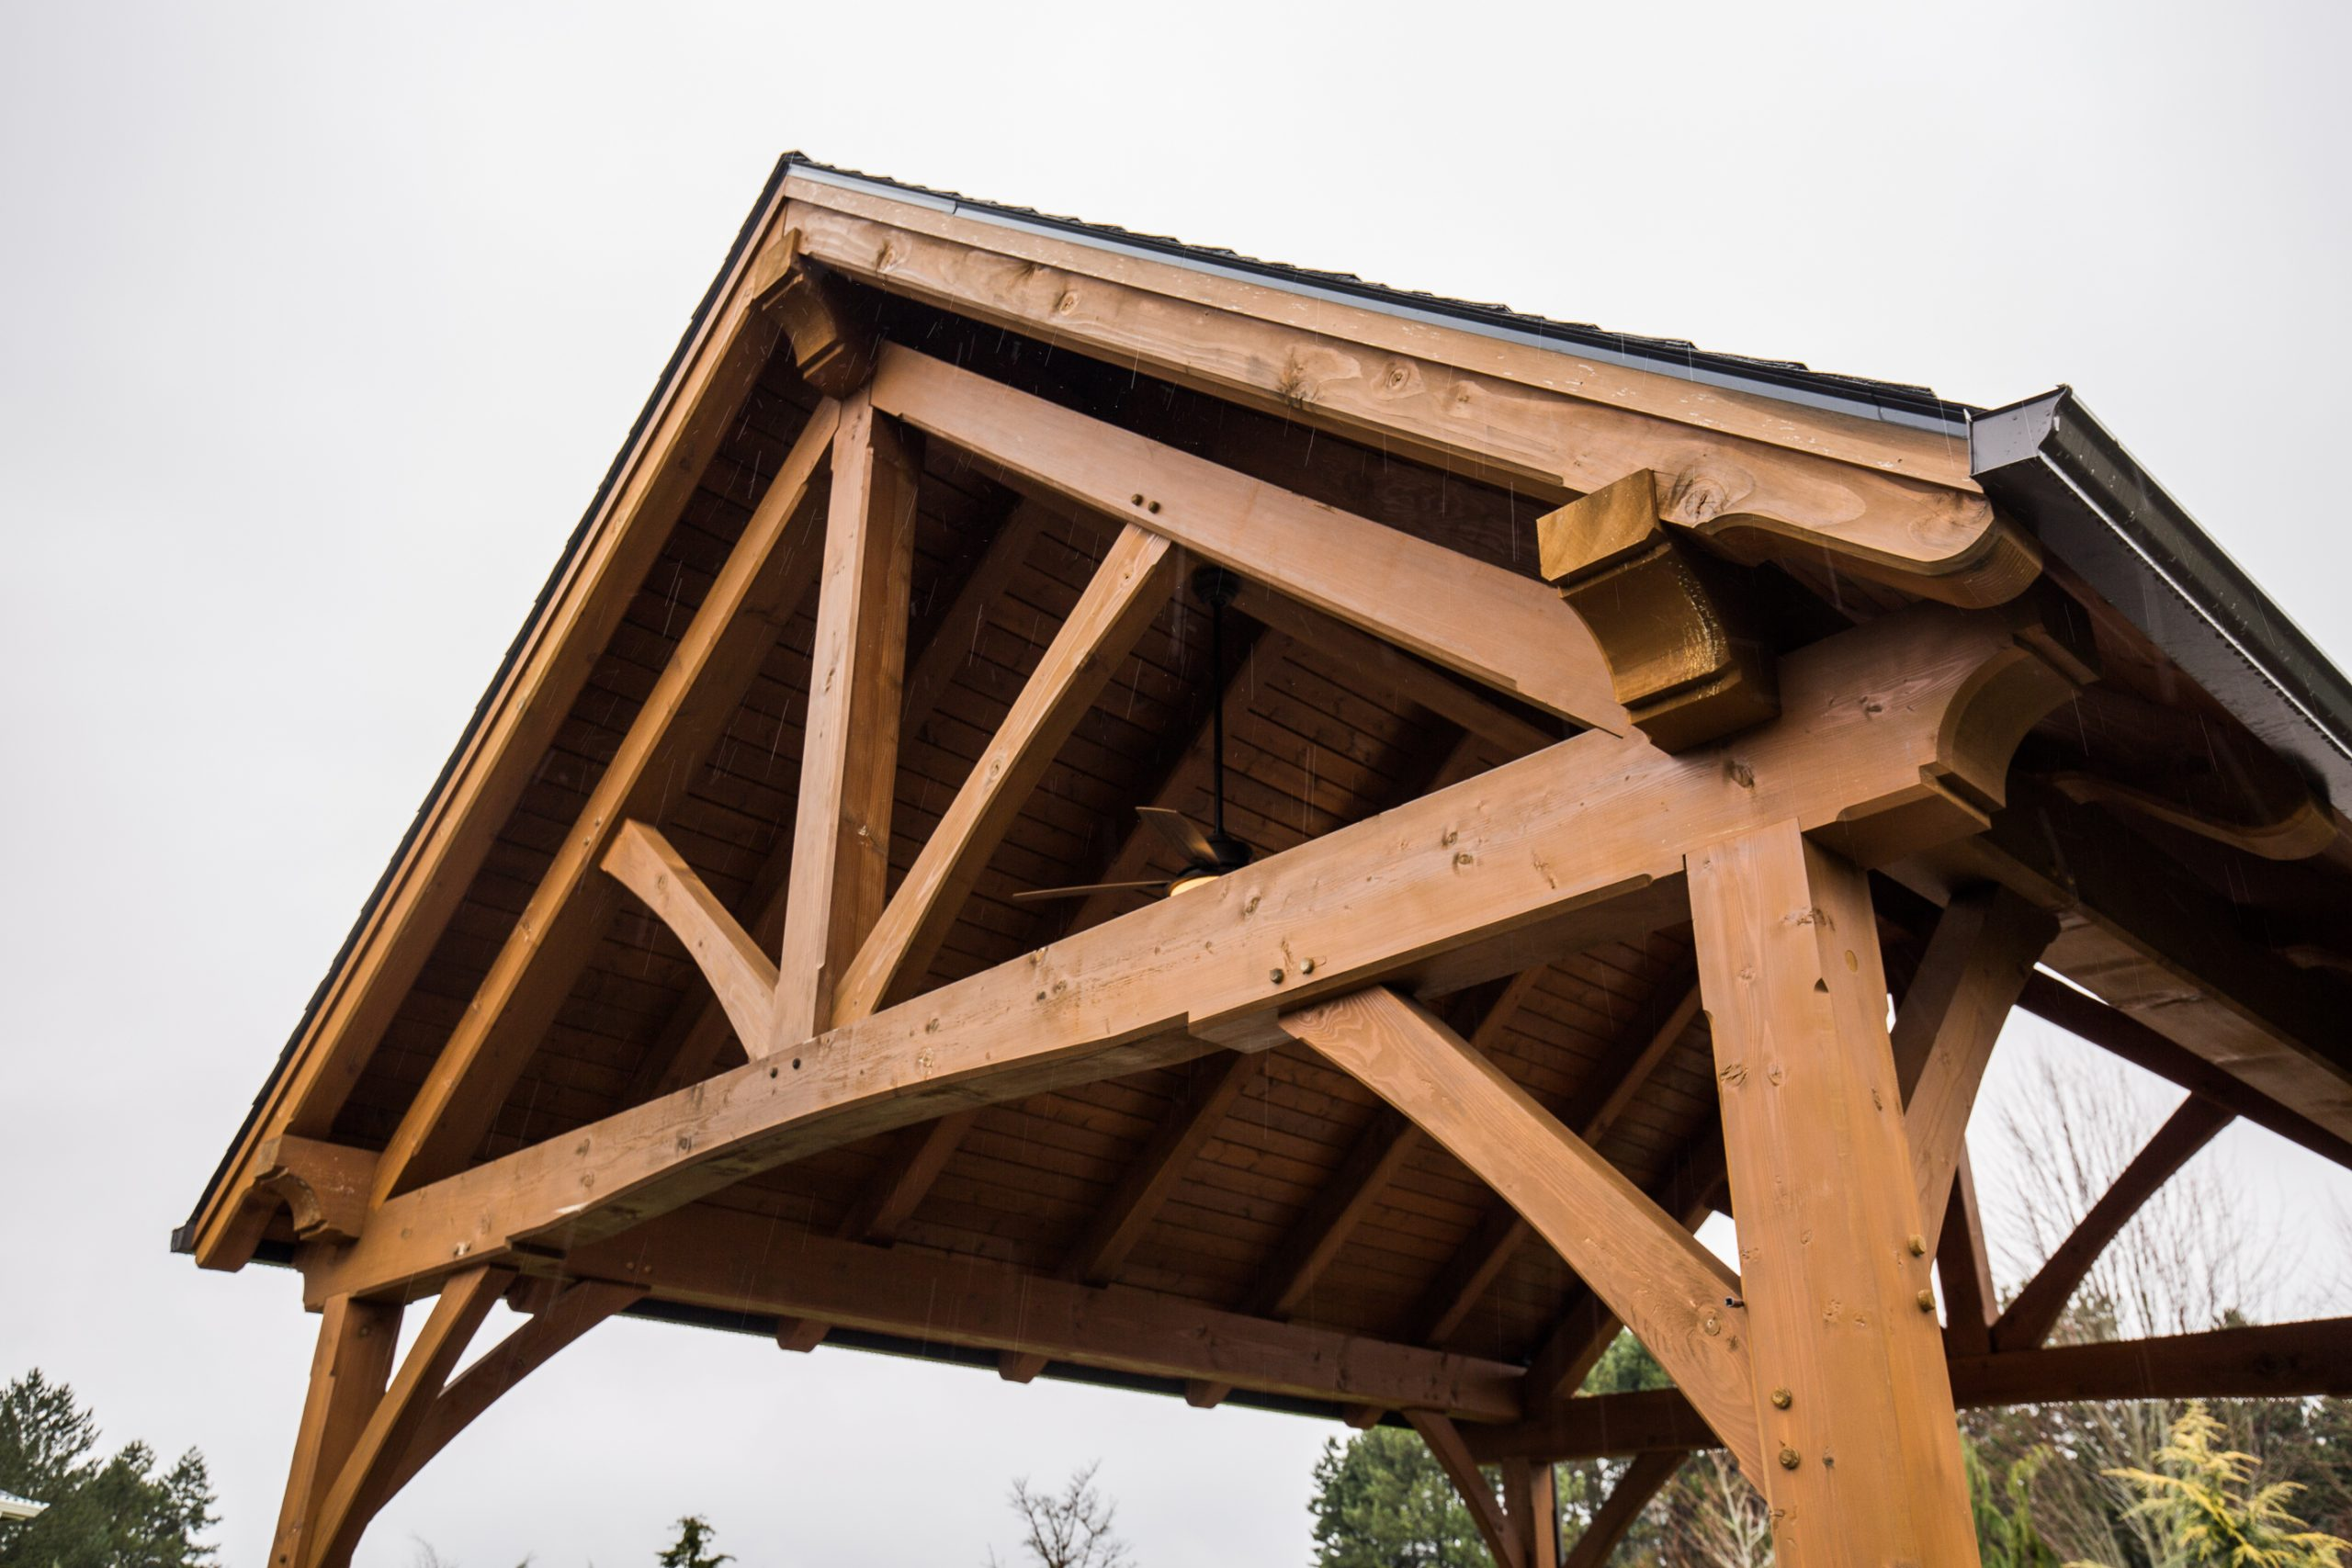 The Tramposh Timber Frame Pavilion in Boring, OR